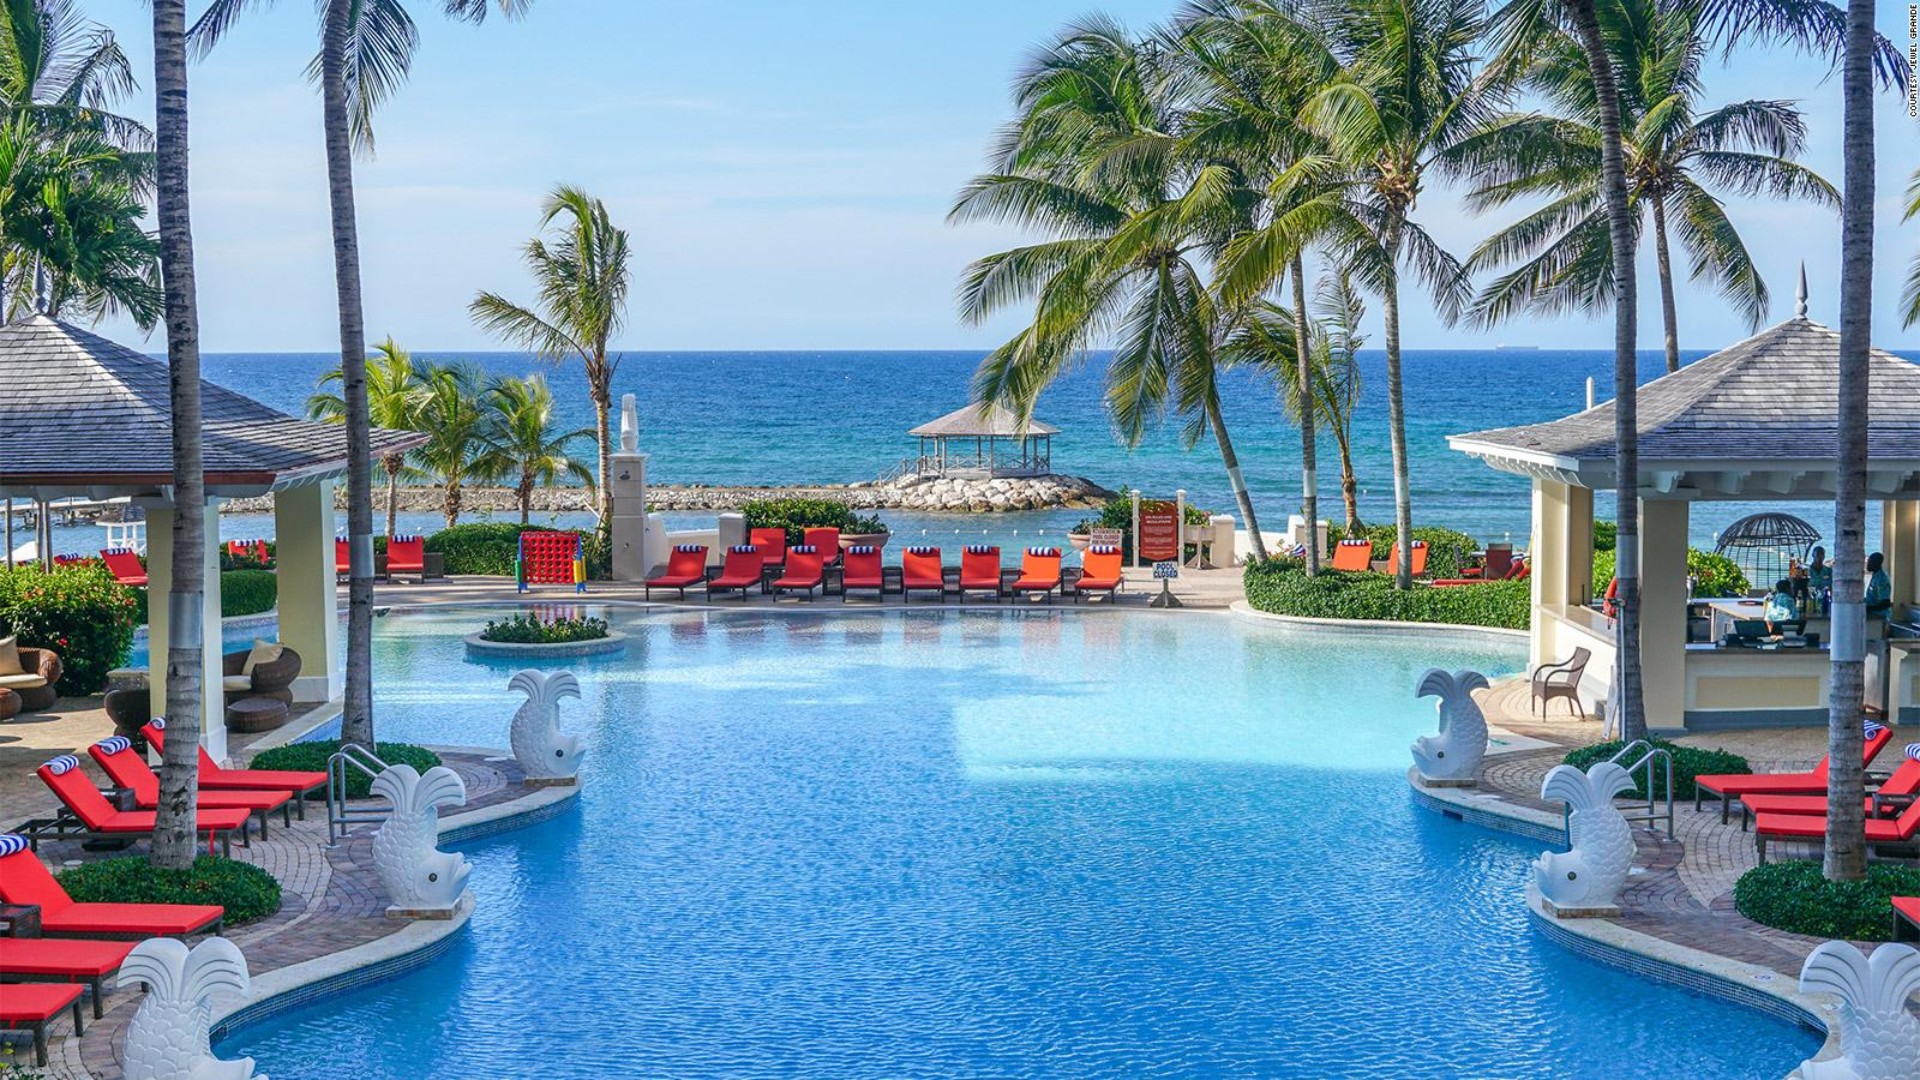 Best All Inclusive Resorts In The Caribbean 2019 Top 10 All Inclusive Caribbean Beach Resorts in 2019 | Top 10 Critic